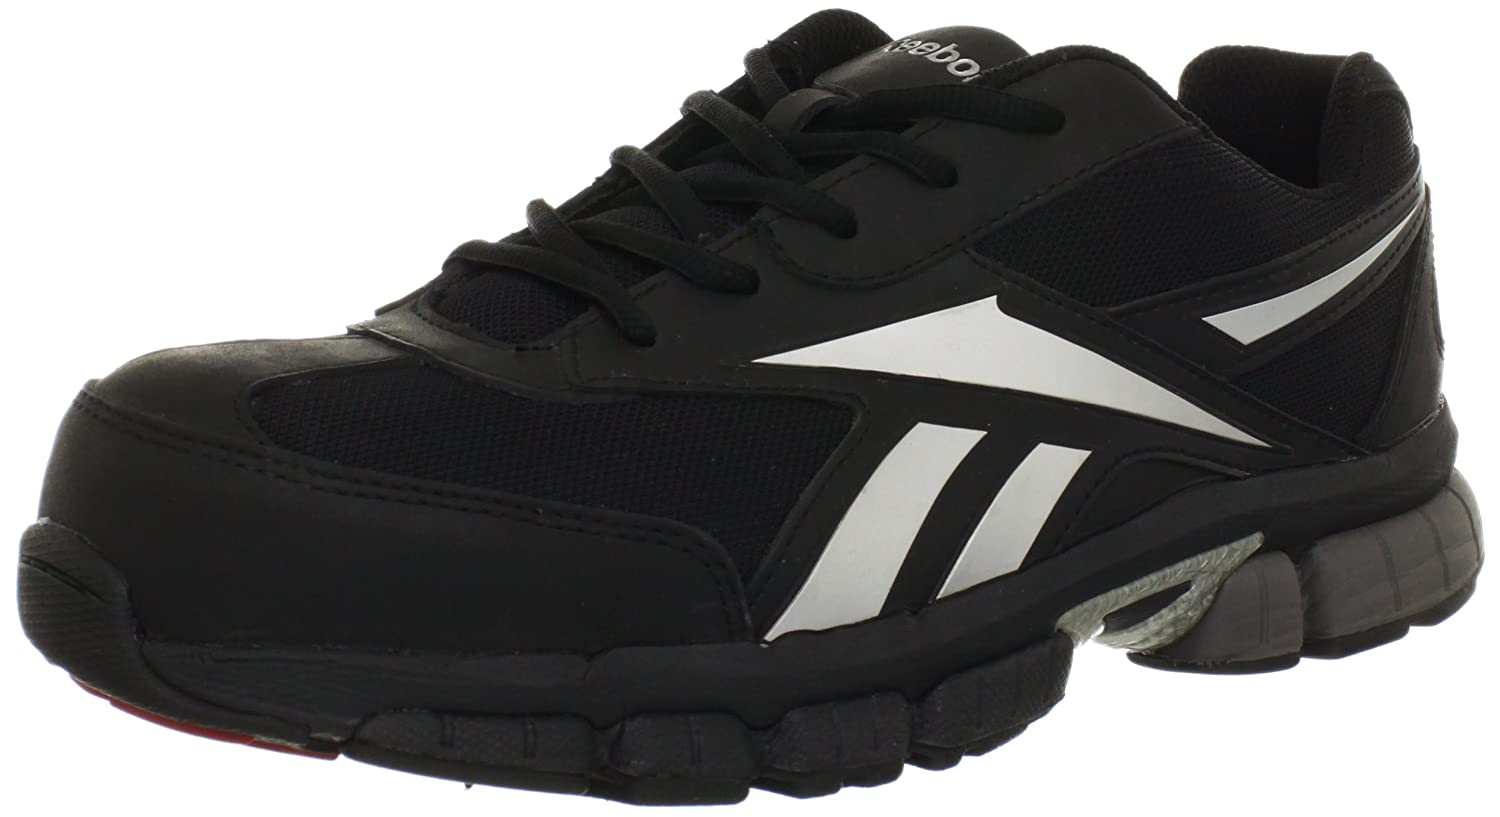 Reebok Work Men's Ketia RB4895 EH Athletic Safety Shoe B009L5PHF8 8.5 D(M) US|Black/Silver